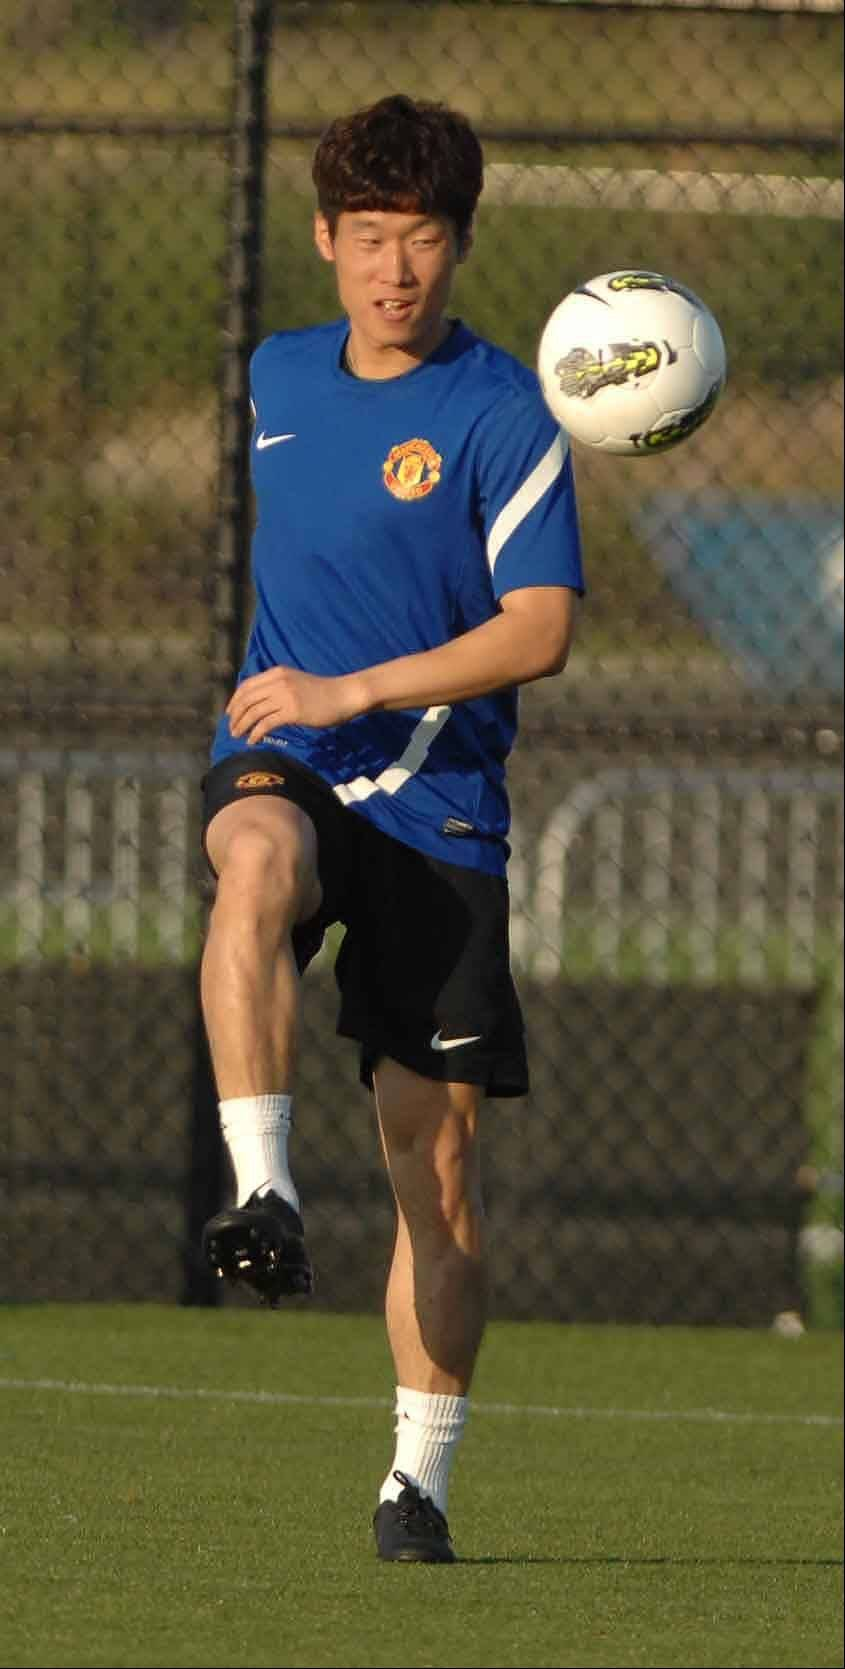 PAUL MICHNA/Pmichna@dailyherald.com Manchester United's Ji-Sung Park has traveled the world, but sight-seeing opportunities are few and far between.